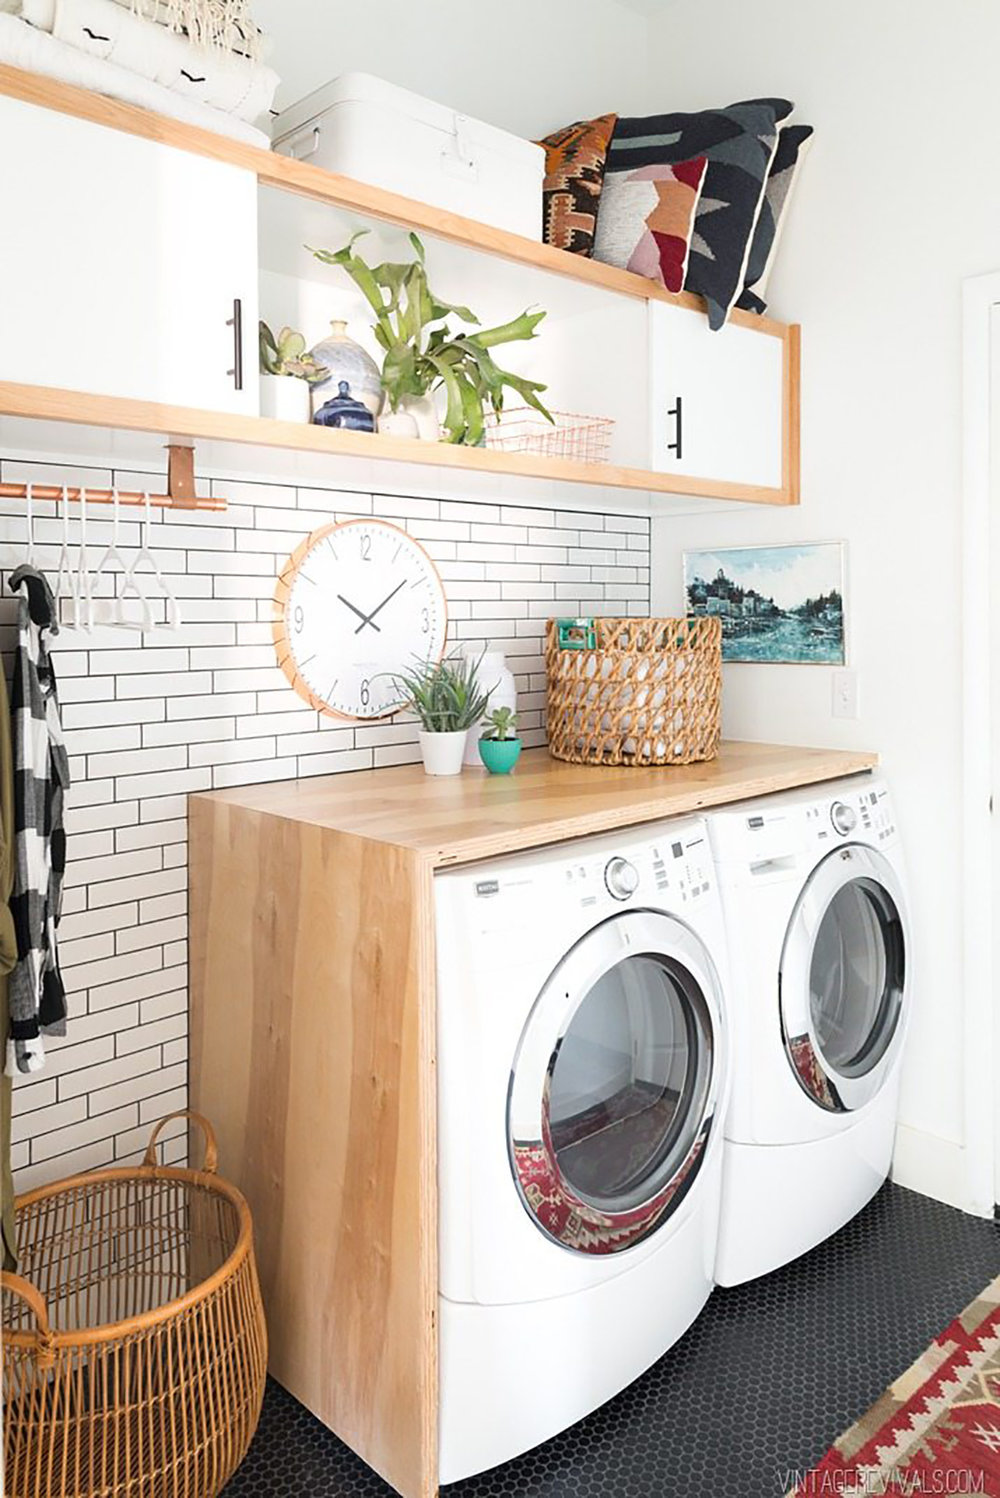 Laundry+Room+Makeover+Vintage+Revivals+11.jpg